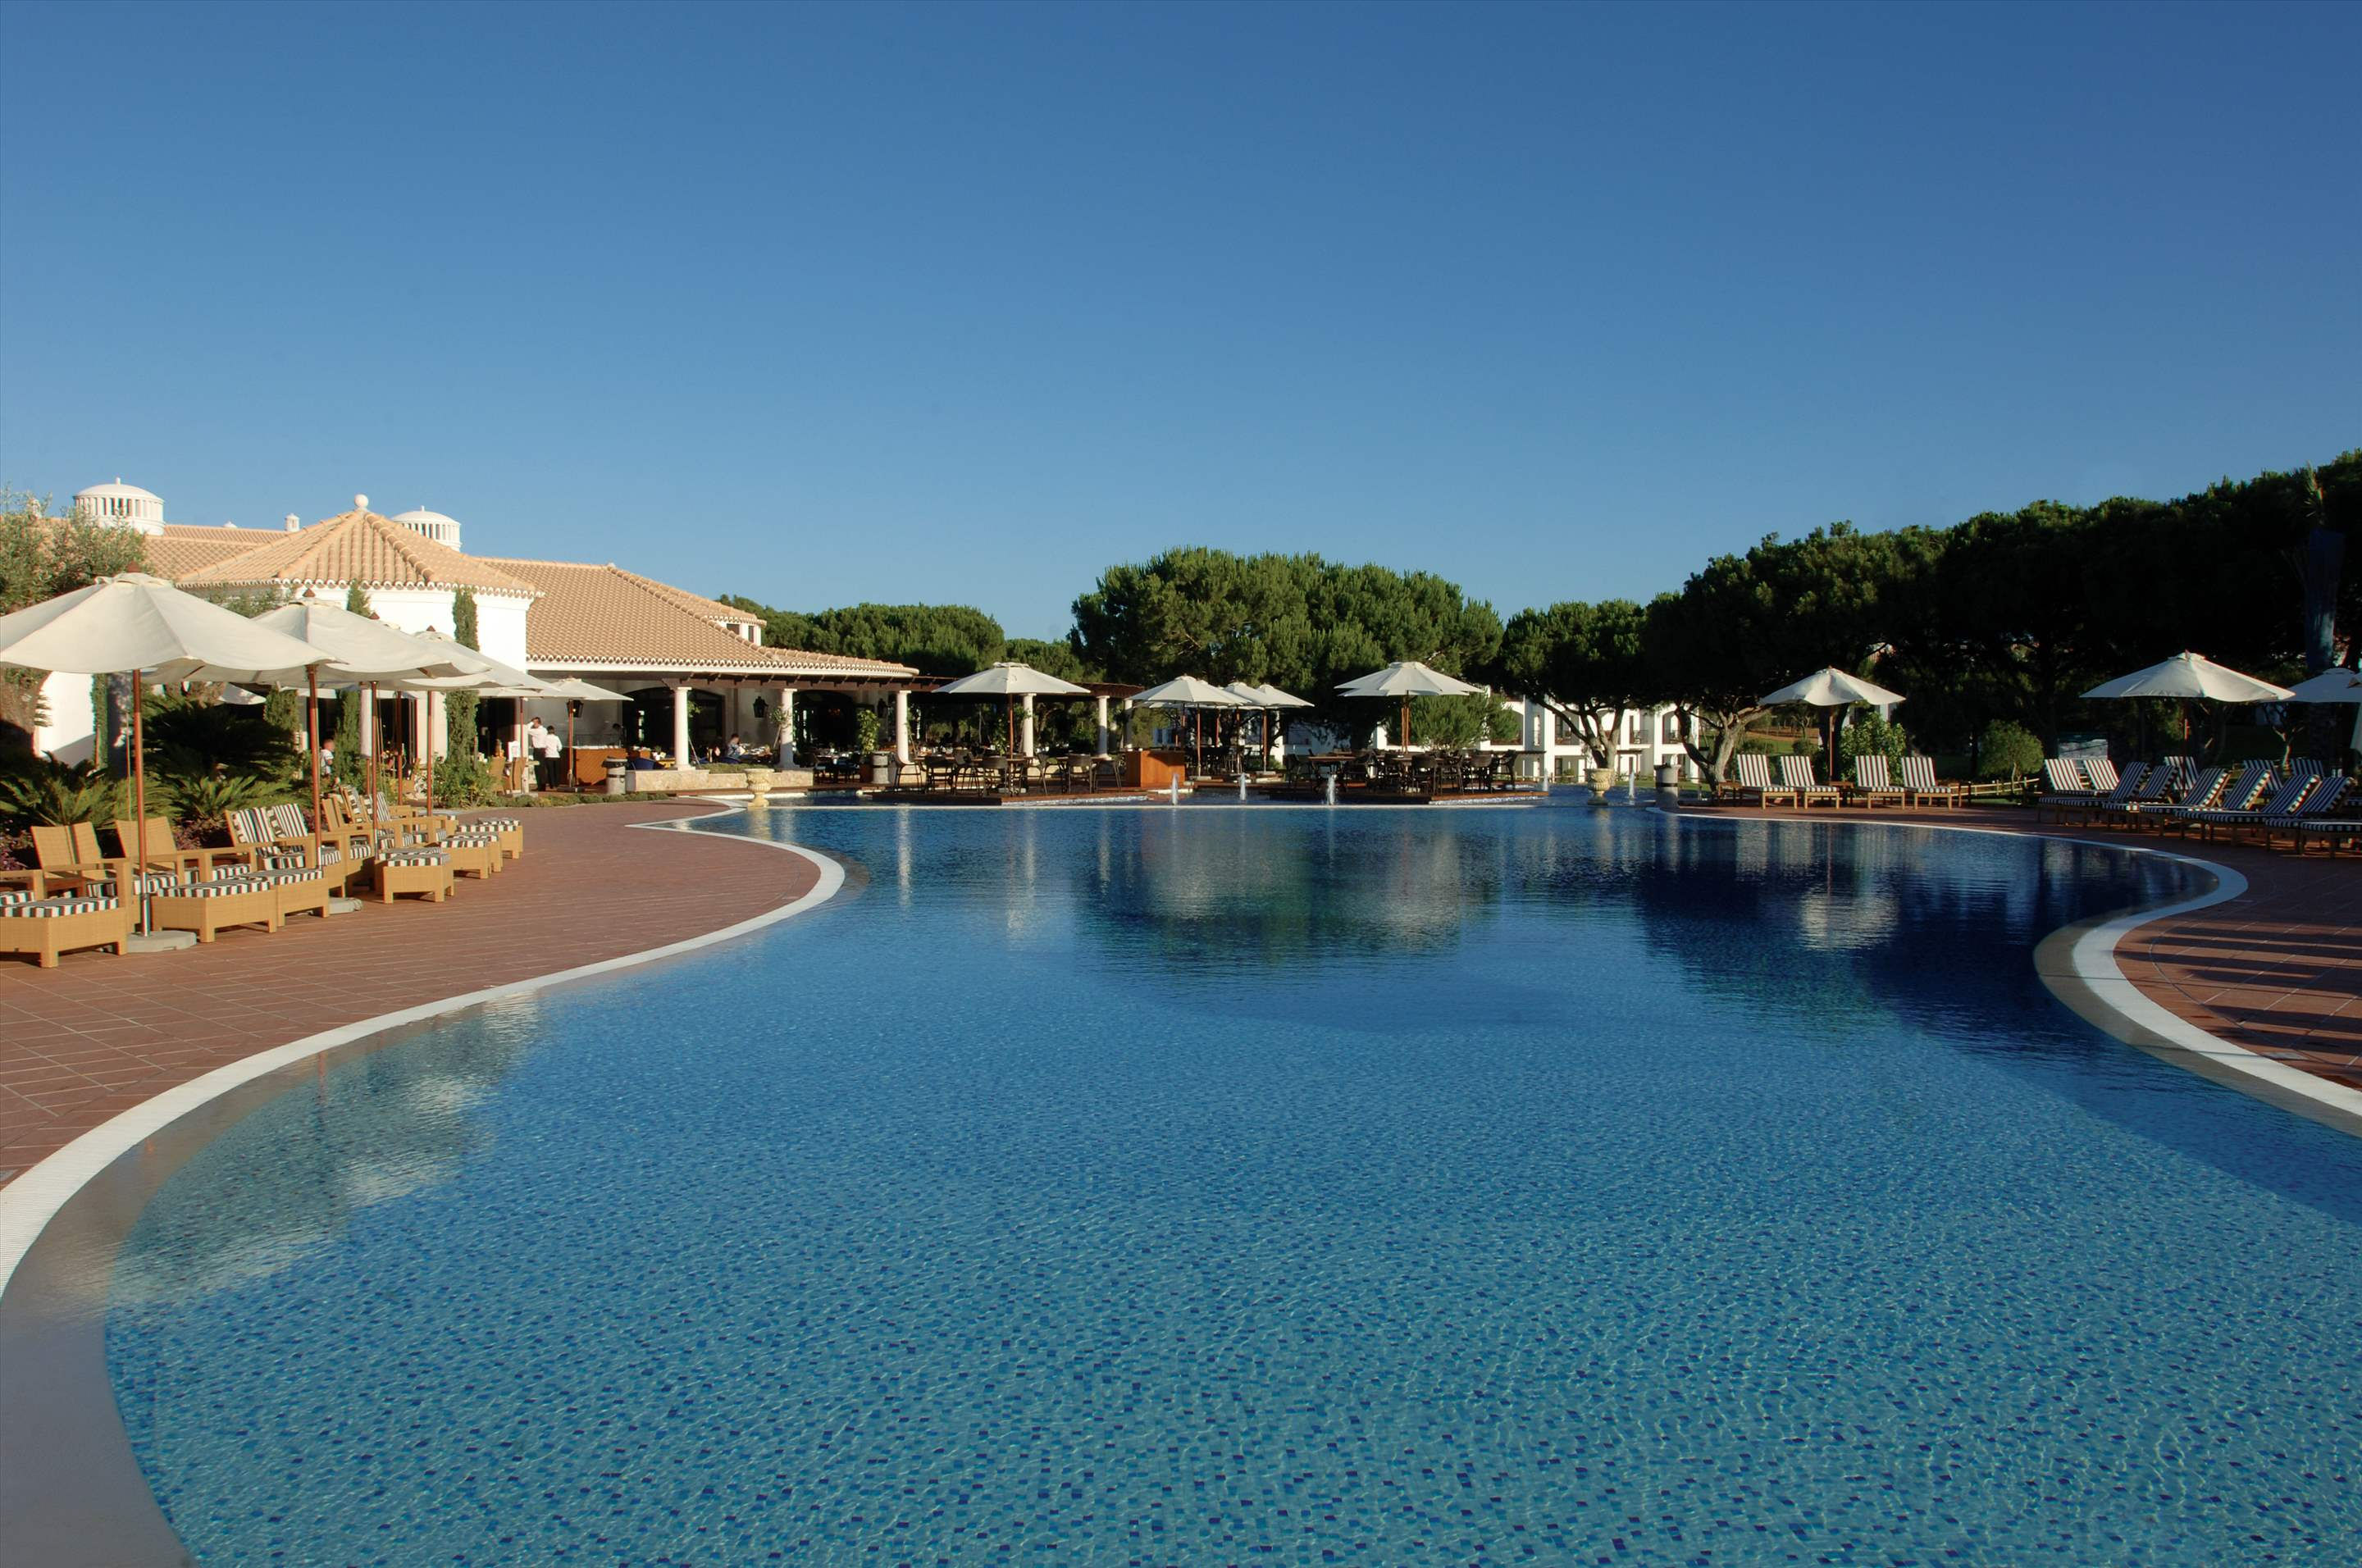 Pine Cliffs Gardens, One Bedroom Suite, S/C Basis, 1 bedroom apartment in Pine Cliffs Resort, Algarve Photo #39